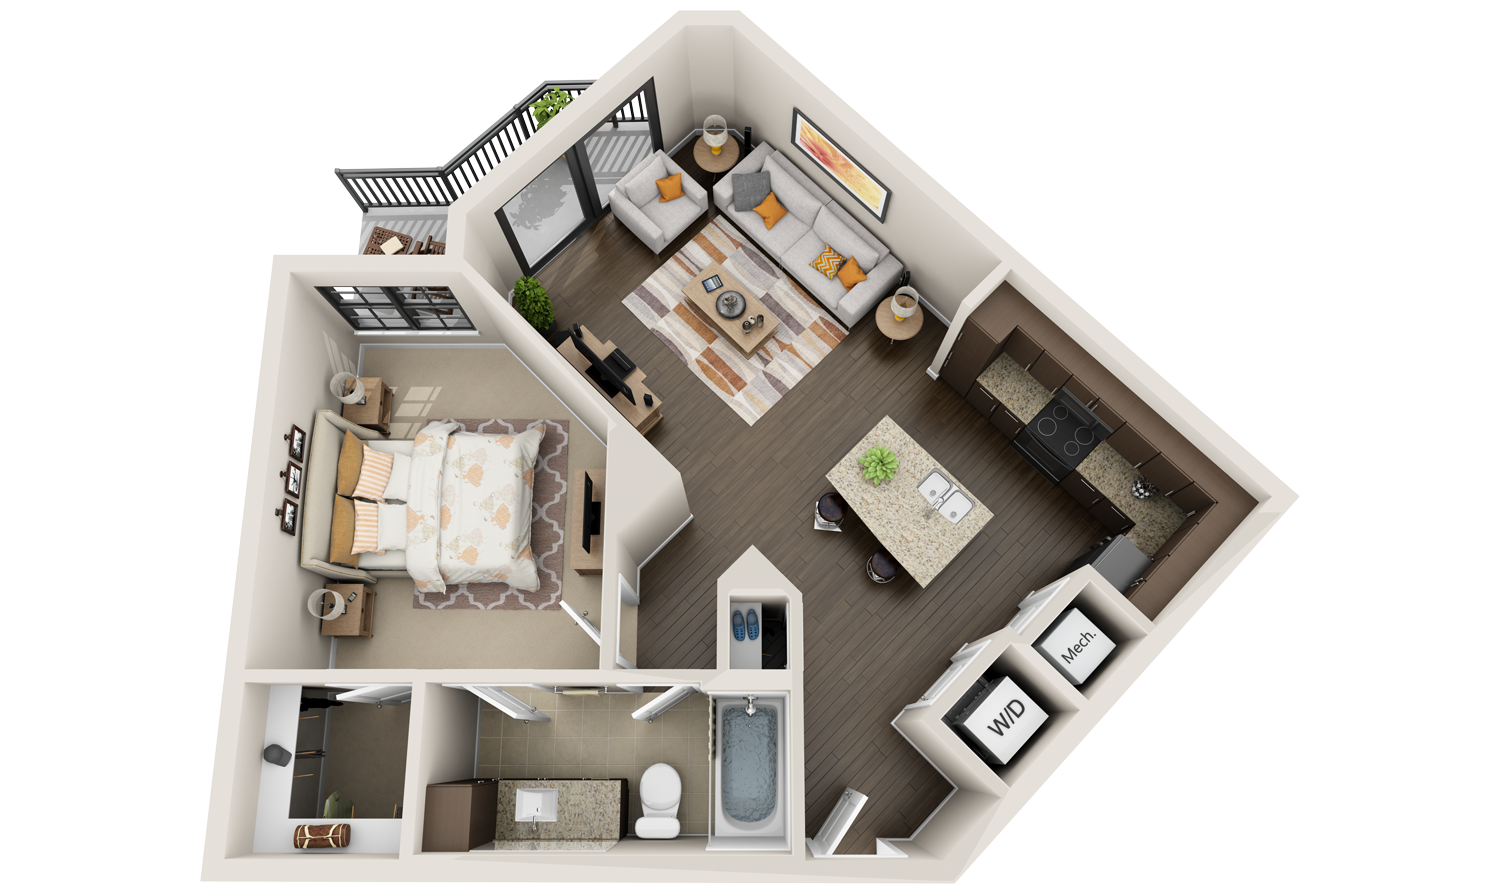 Best 3d floor plans for apartments virtual tours we for Apartment floor plan ideas